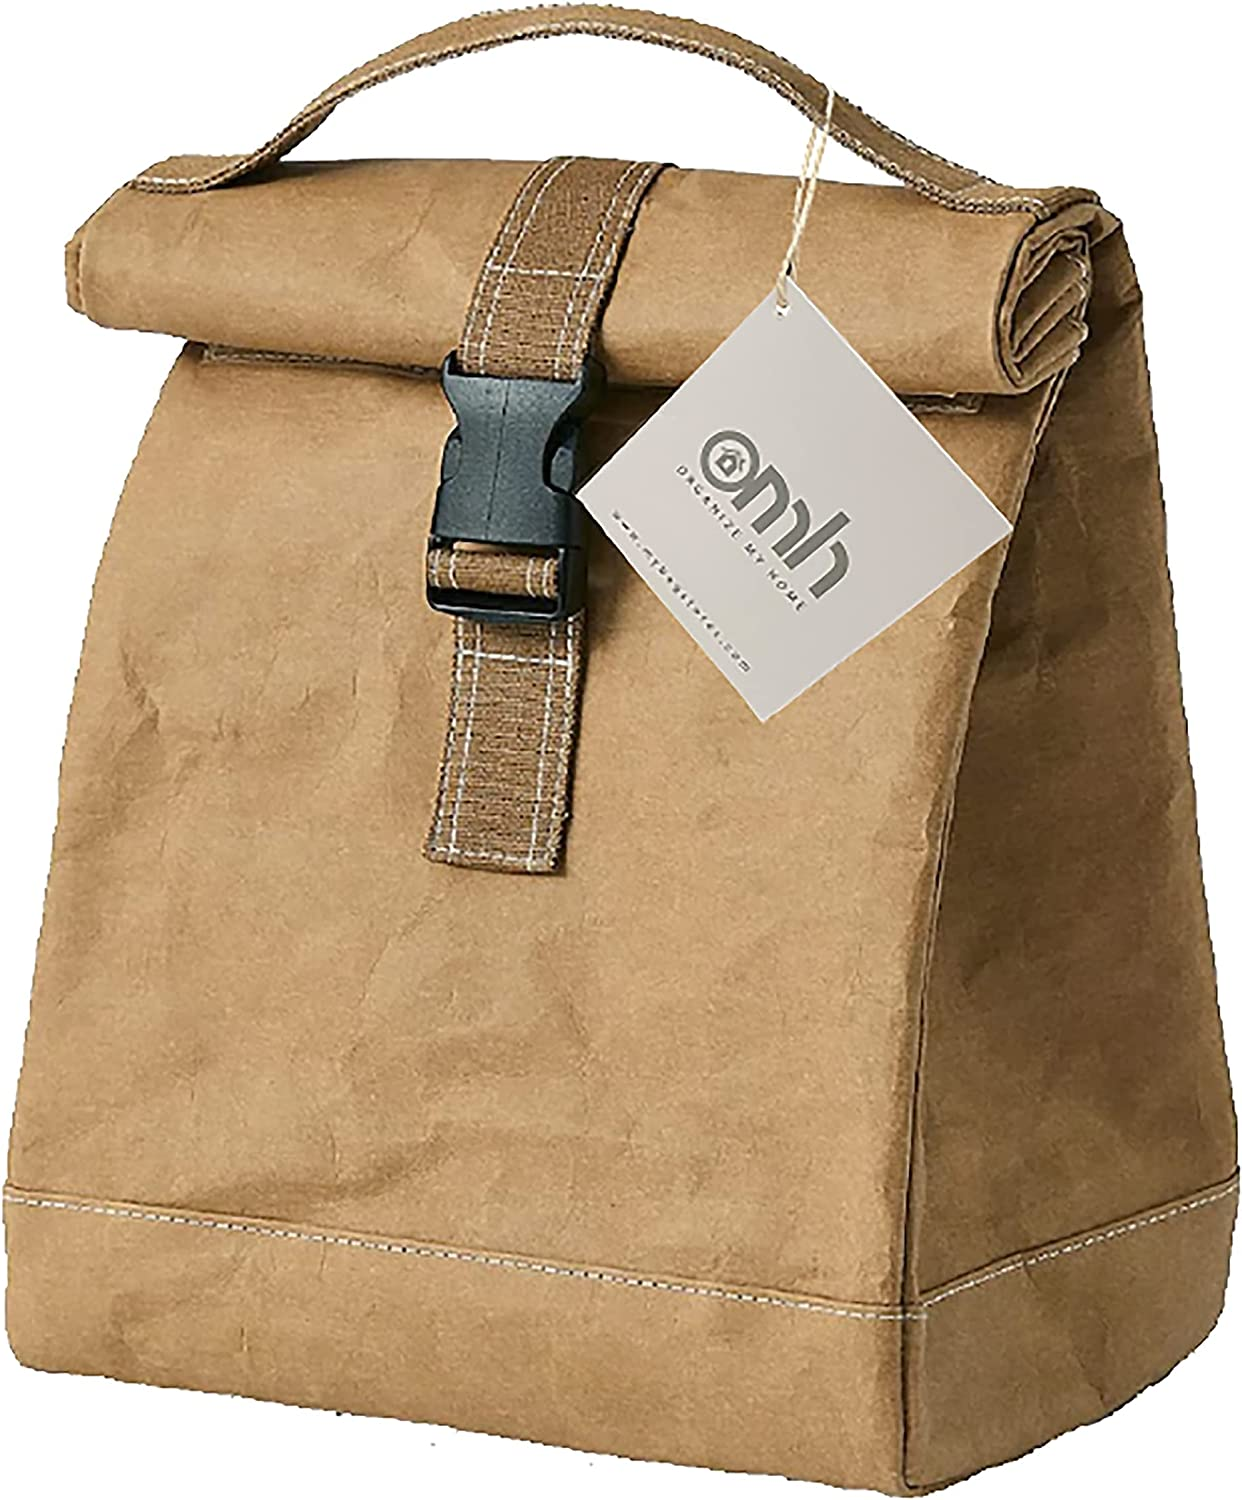 Roll Down Lunch Tote Bag (Brown)